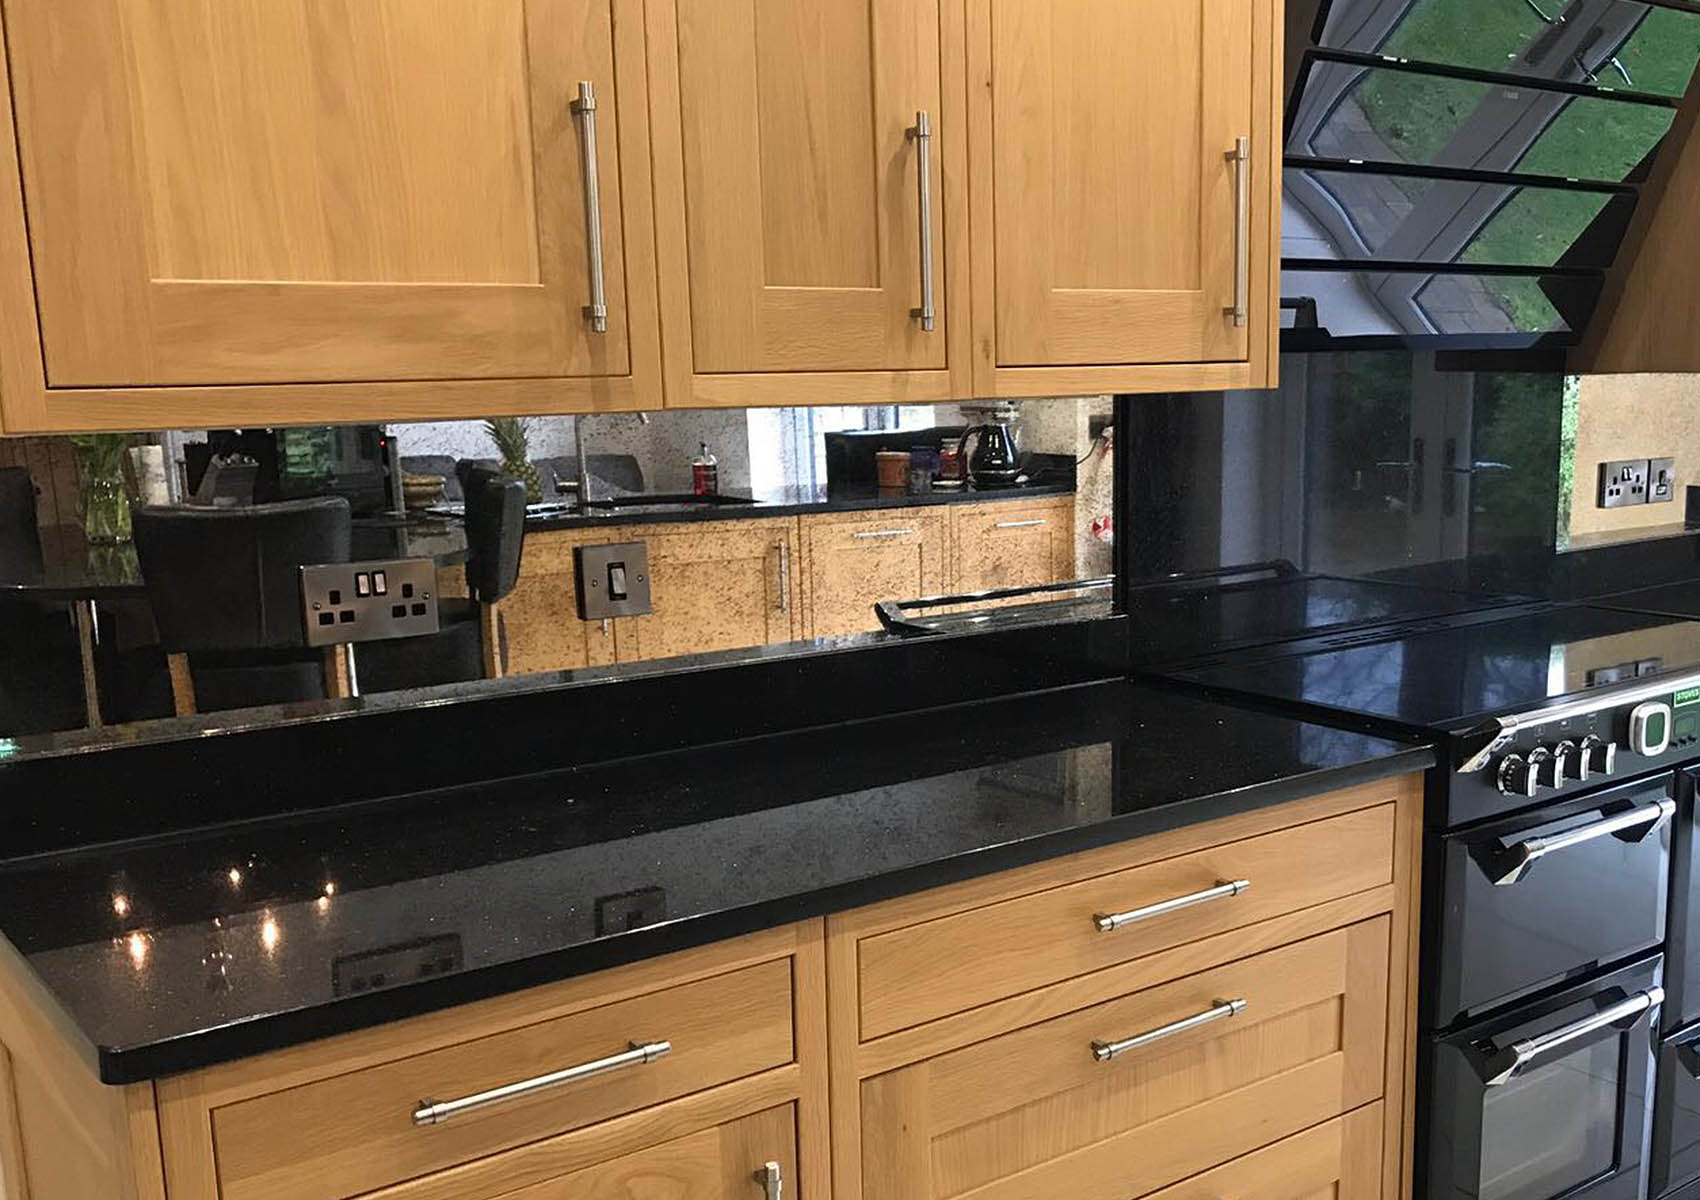 Kitchen Splashback in Mottled style antique mirror glass